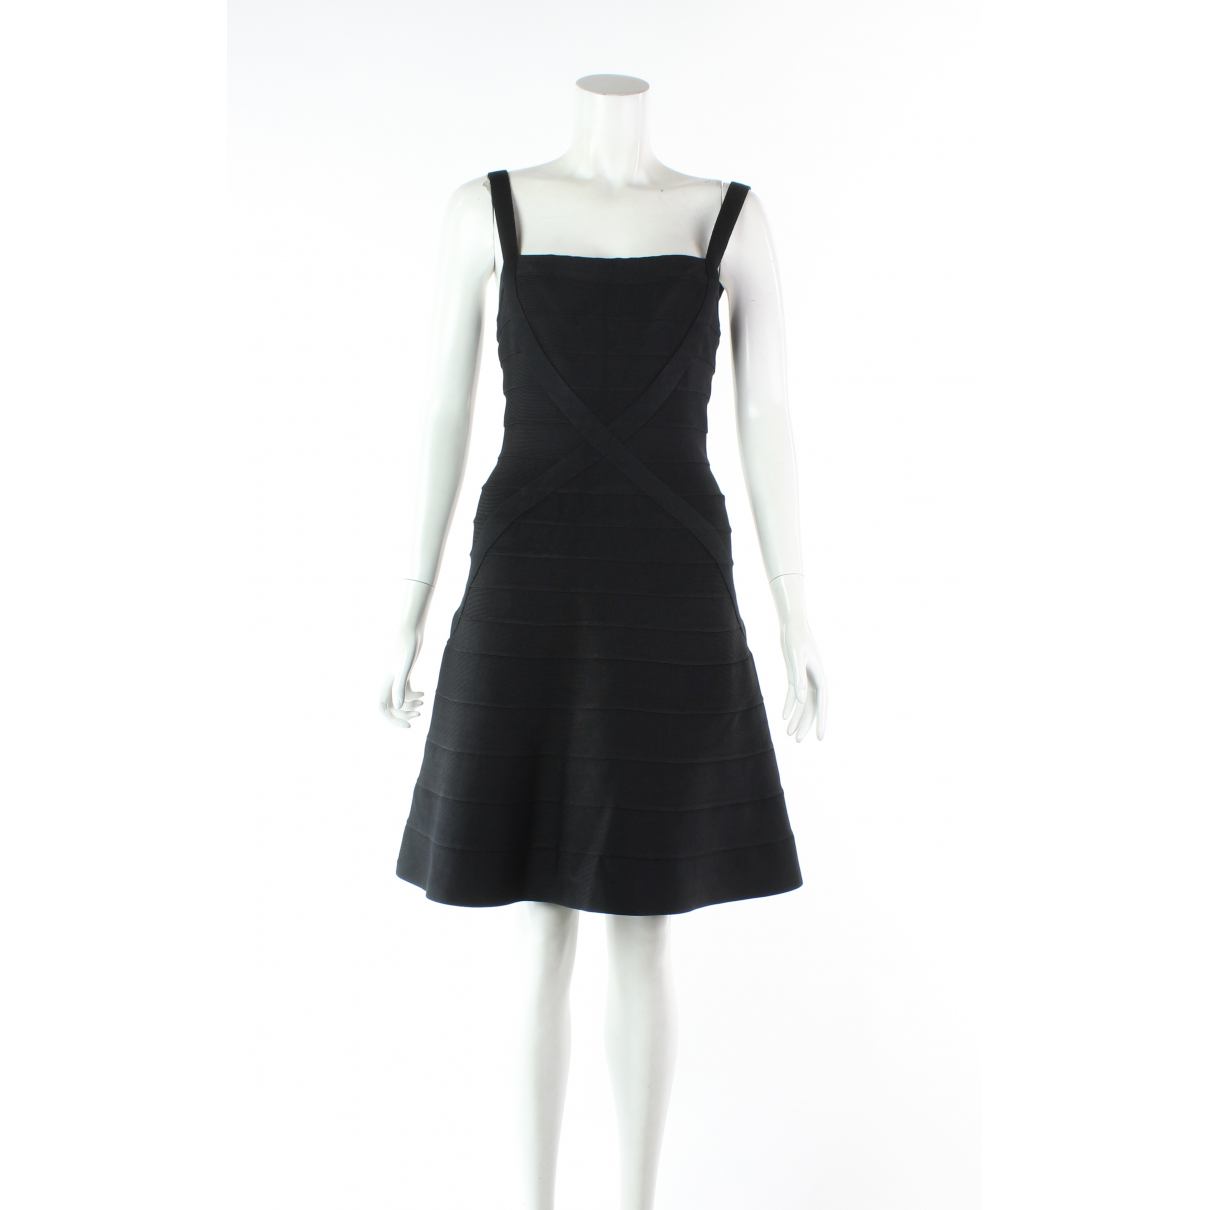 Herve Leger \N Black dress for Women M International